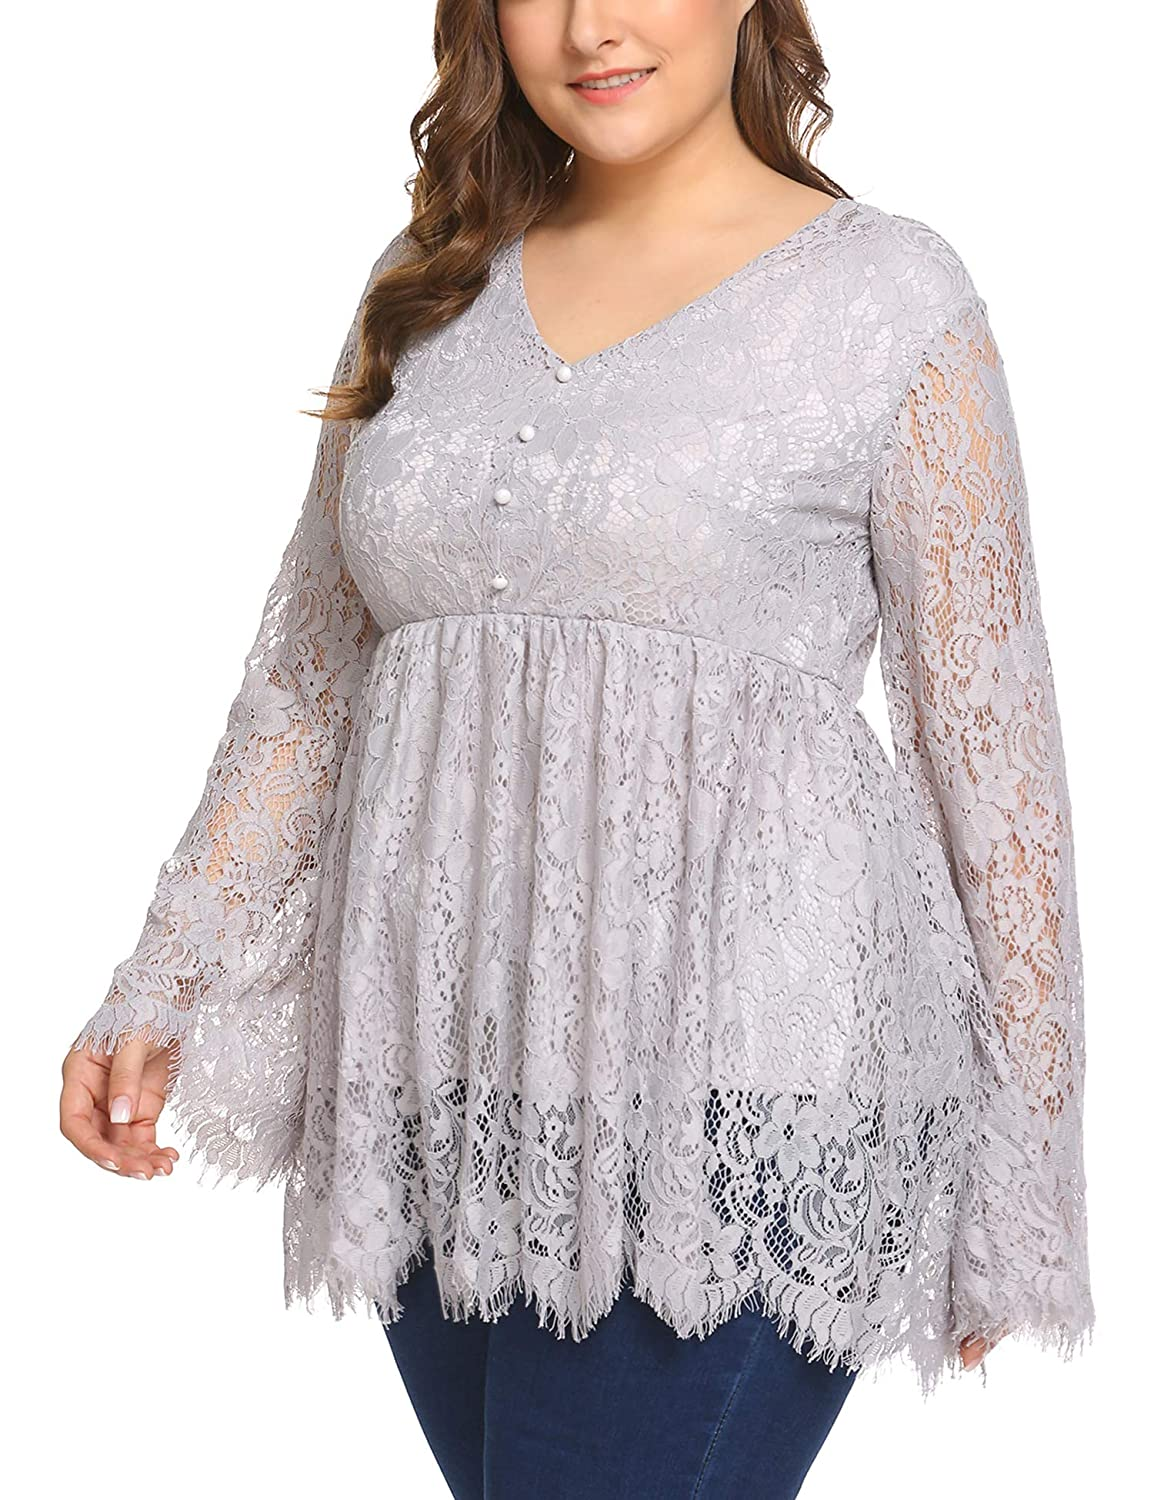 3b951a74b60 Women s Plus Size V-Neck Long Sleeve Ruffle Puff Sleeve Lace Blouse Tops at  Amazon Women s Clothing store